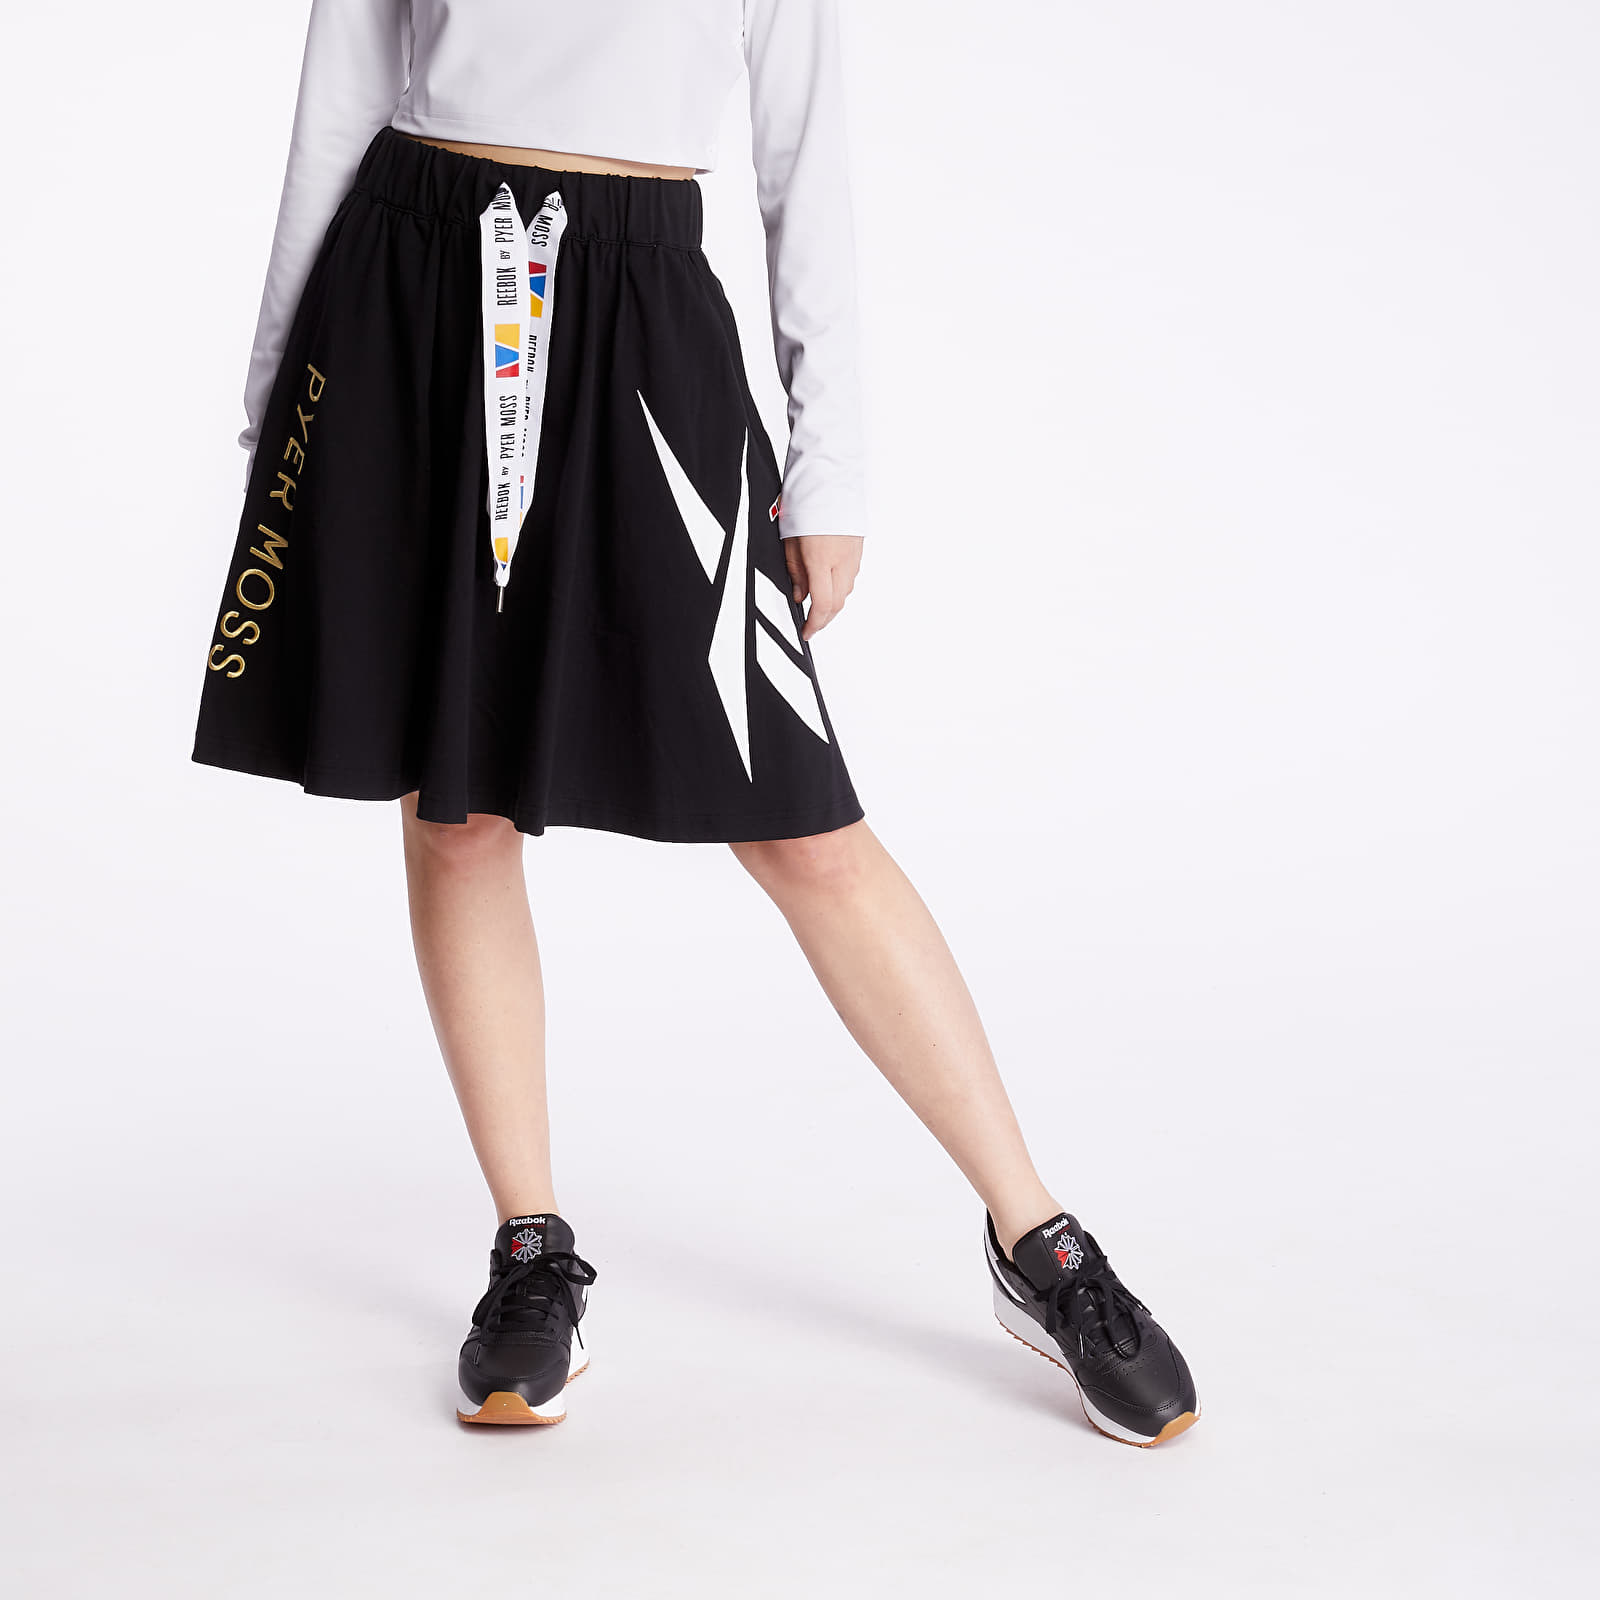 Fuste Reebok x Pyer Moss Long Skirt Black